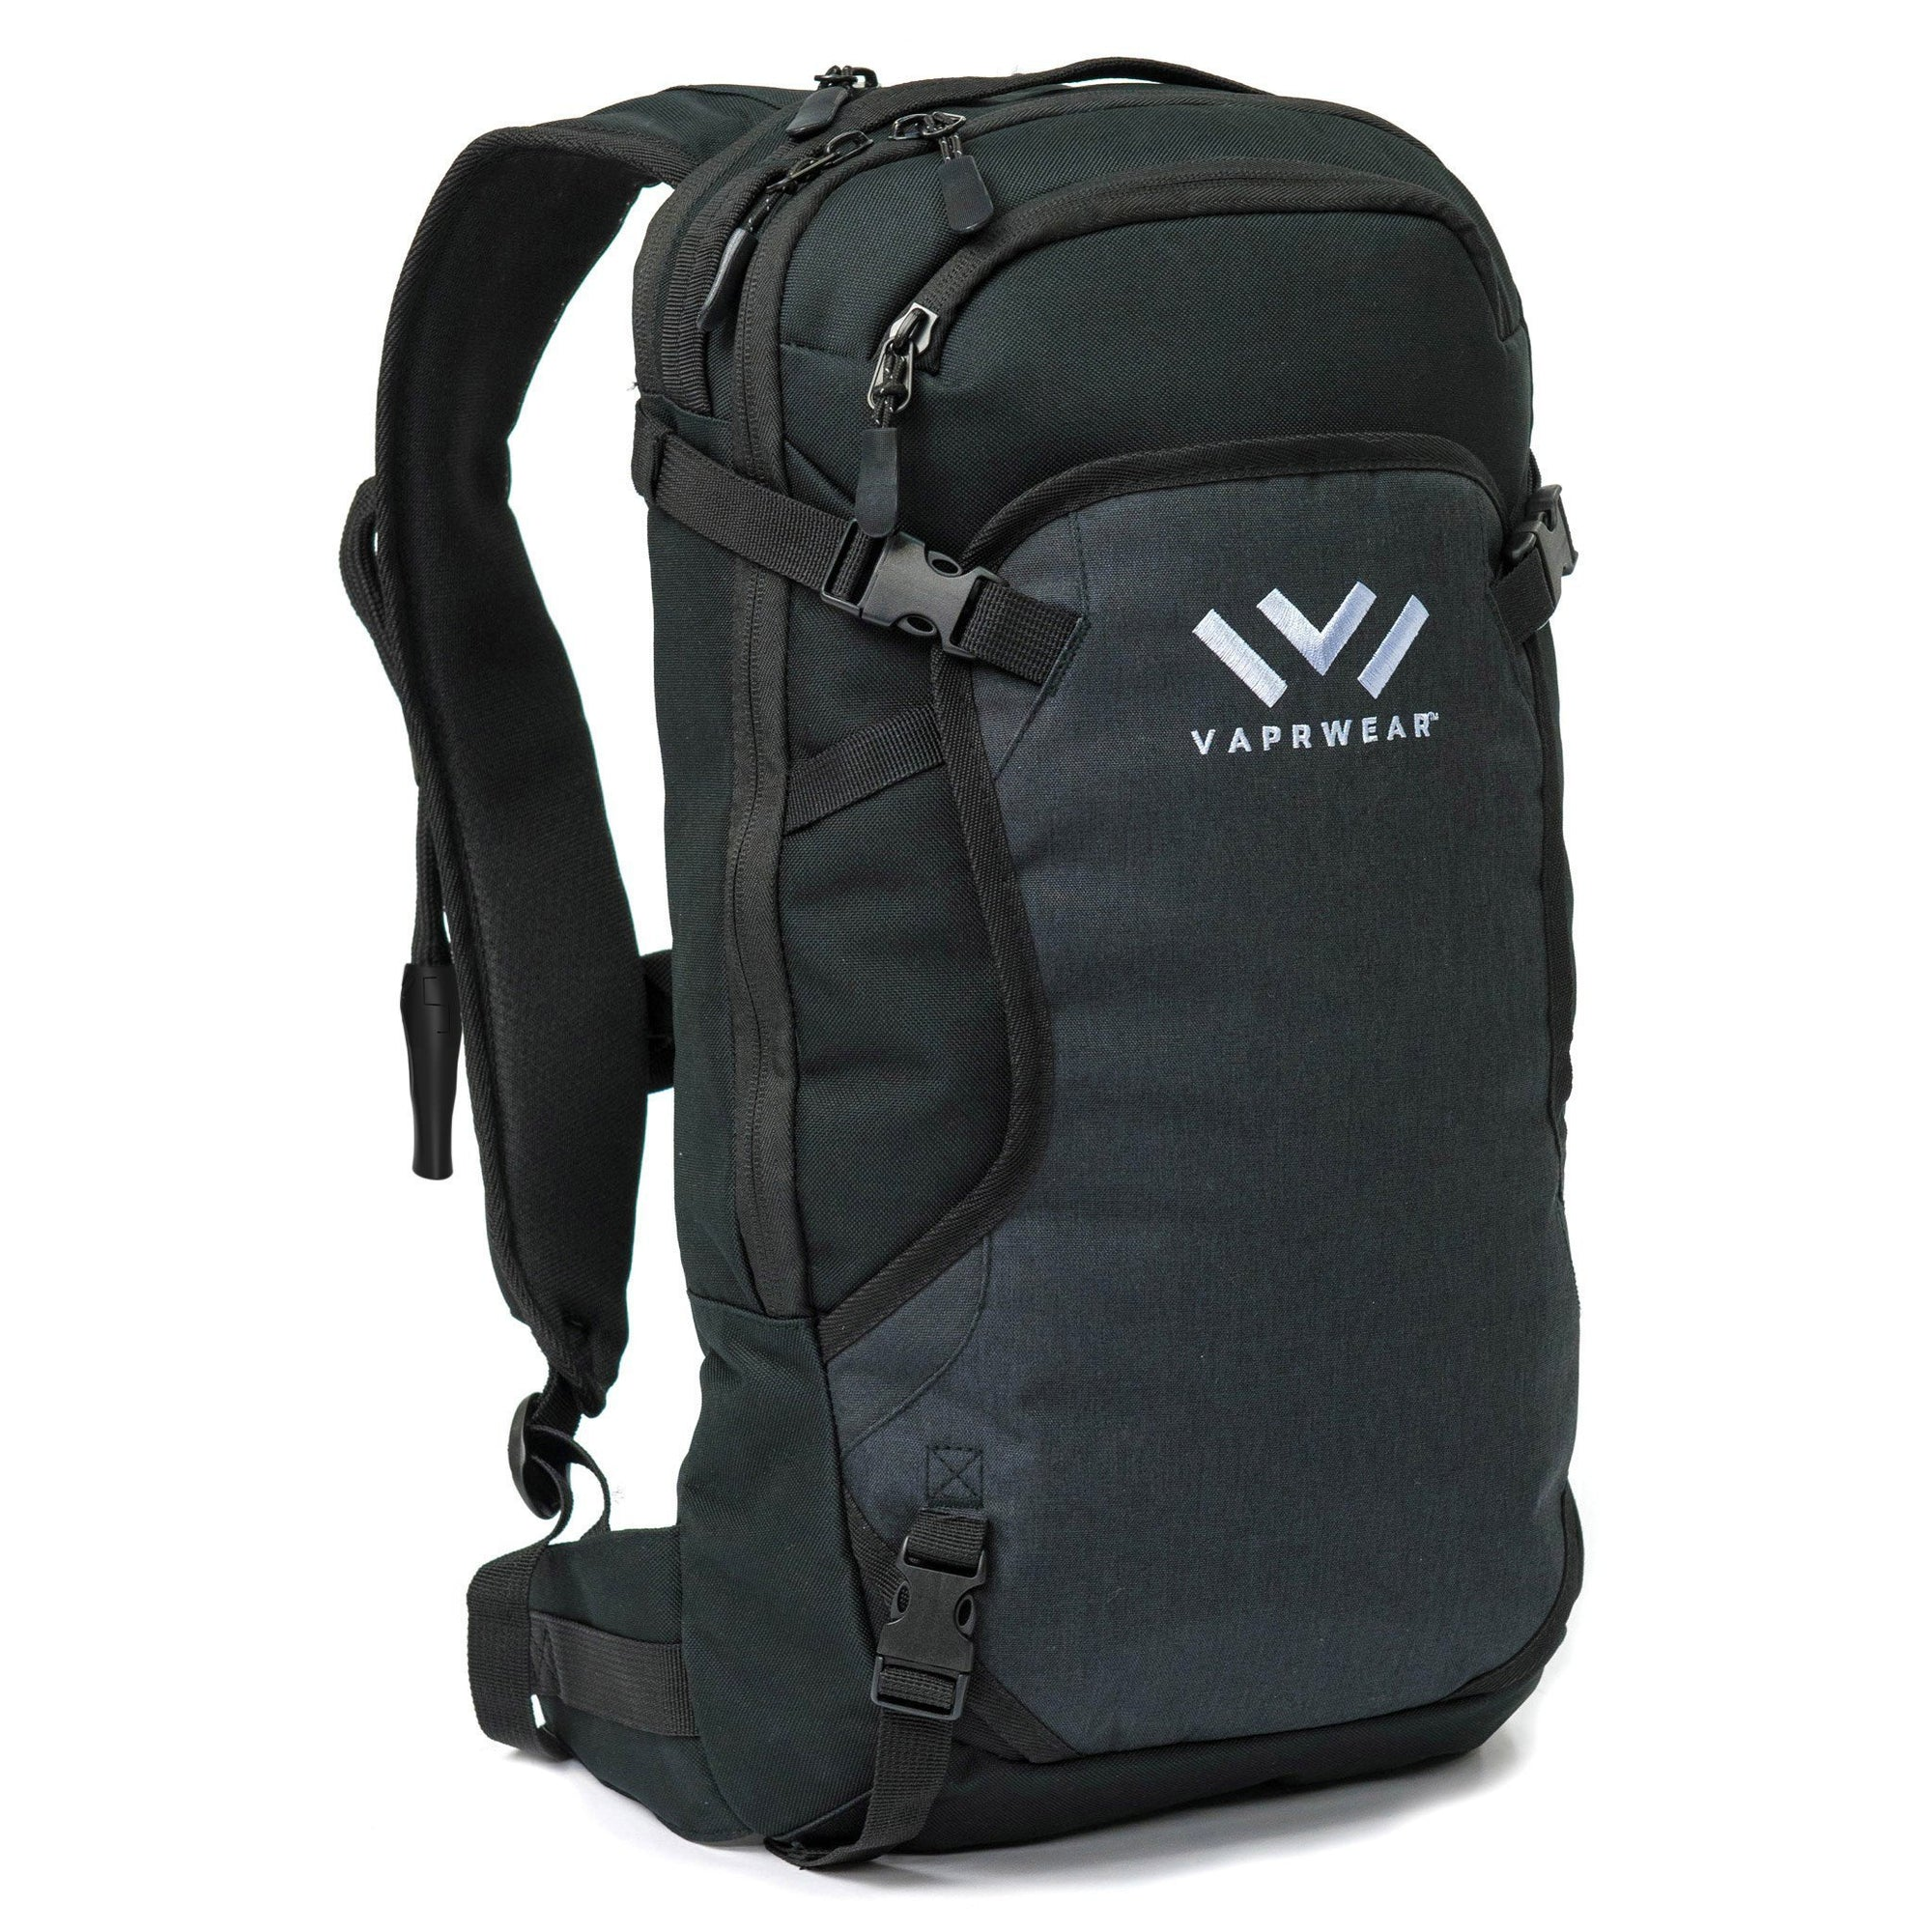 Full shot of black backpack facing slightly right with white Vaprwear word and logo in front